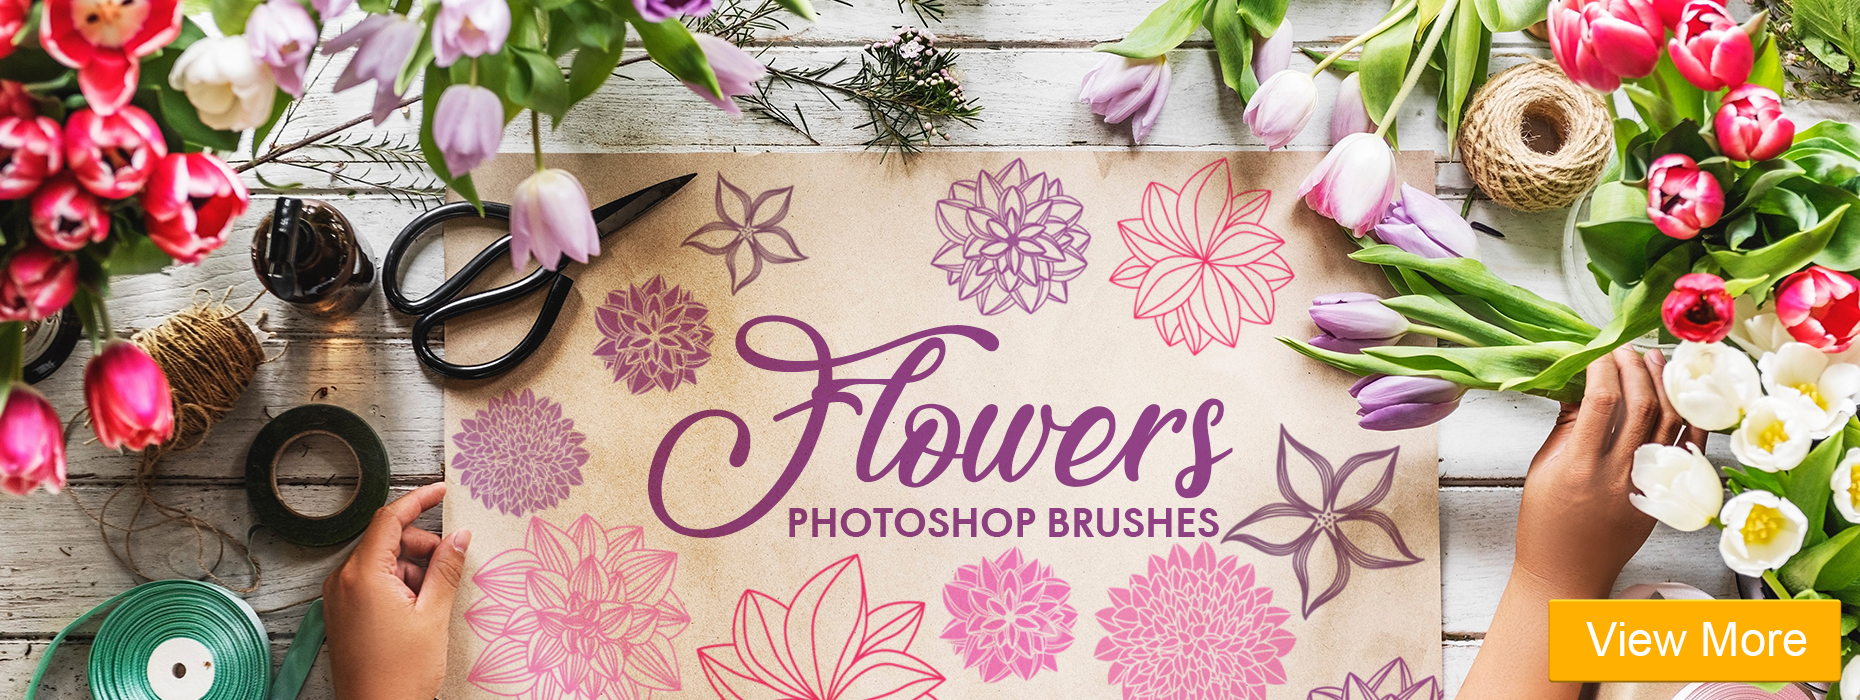 free photoshop Pencil brushes flowers photoshop brushes banner